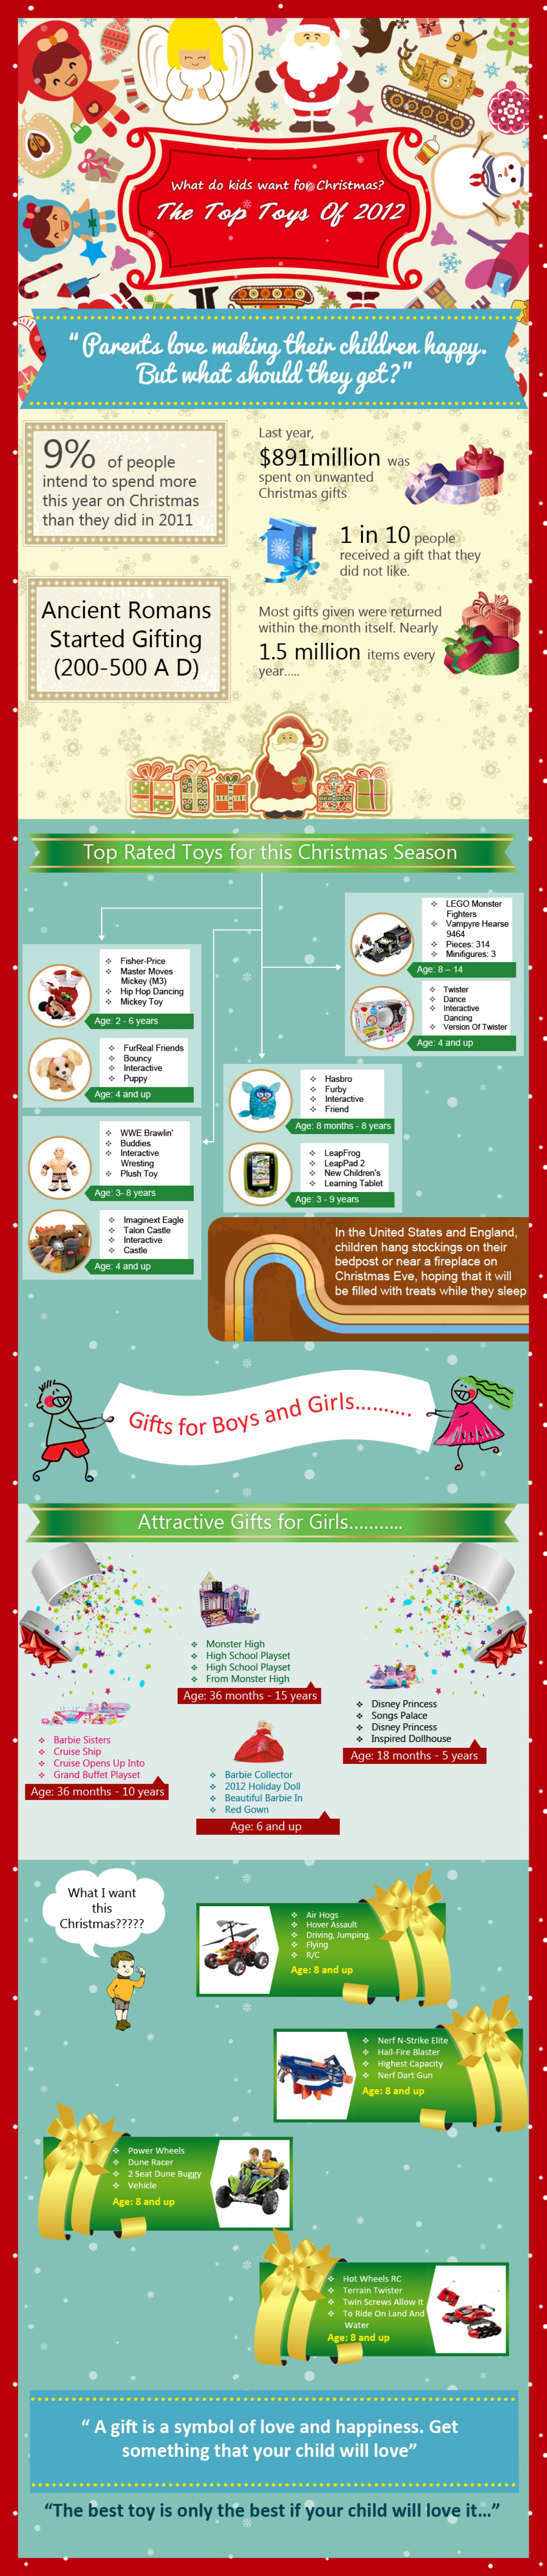 What do kids want for Christmas?